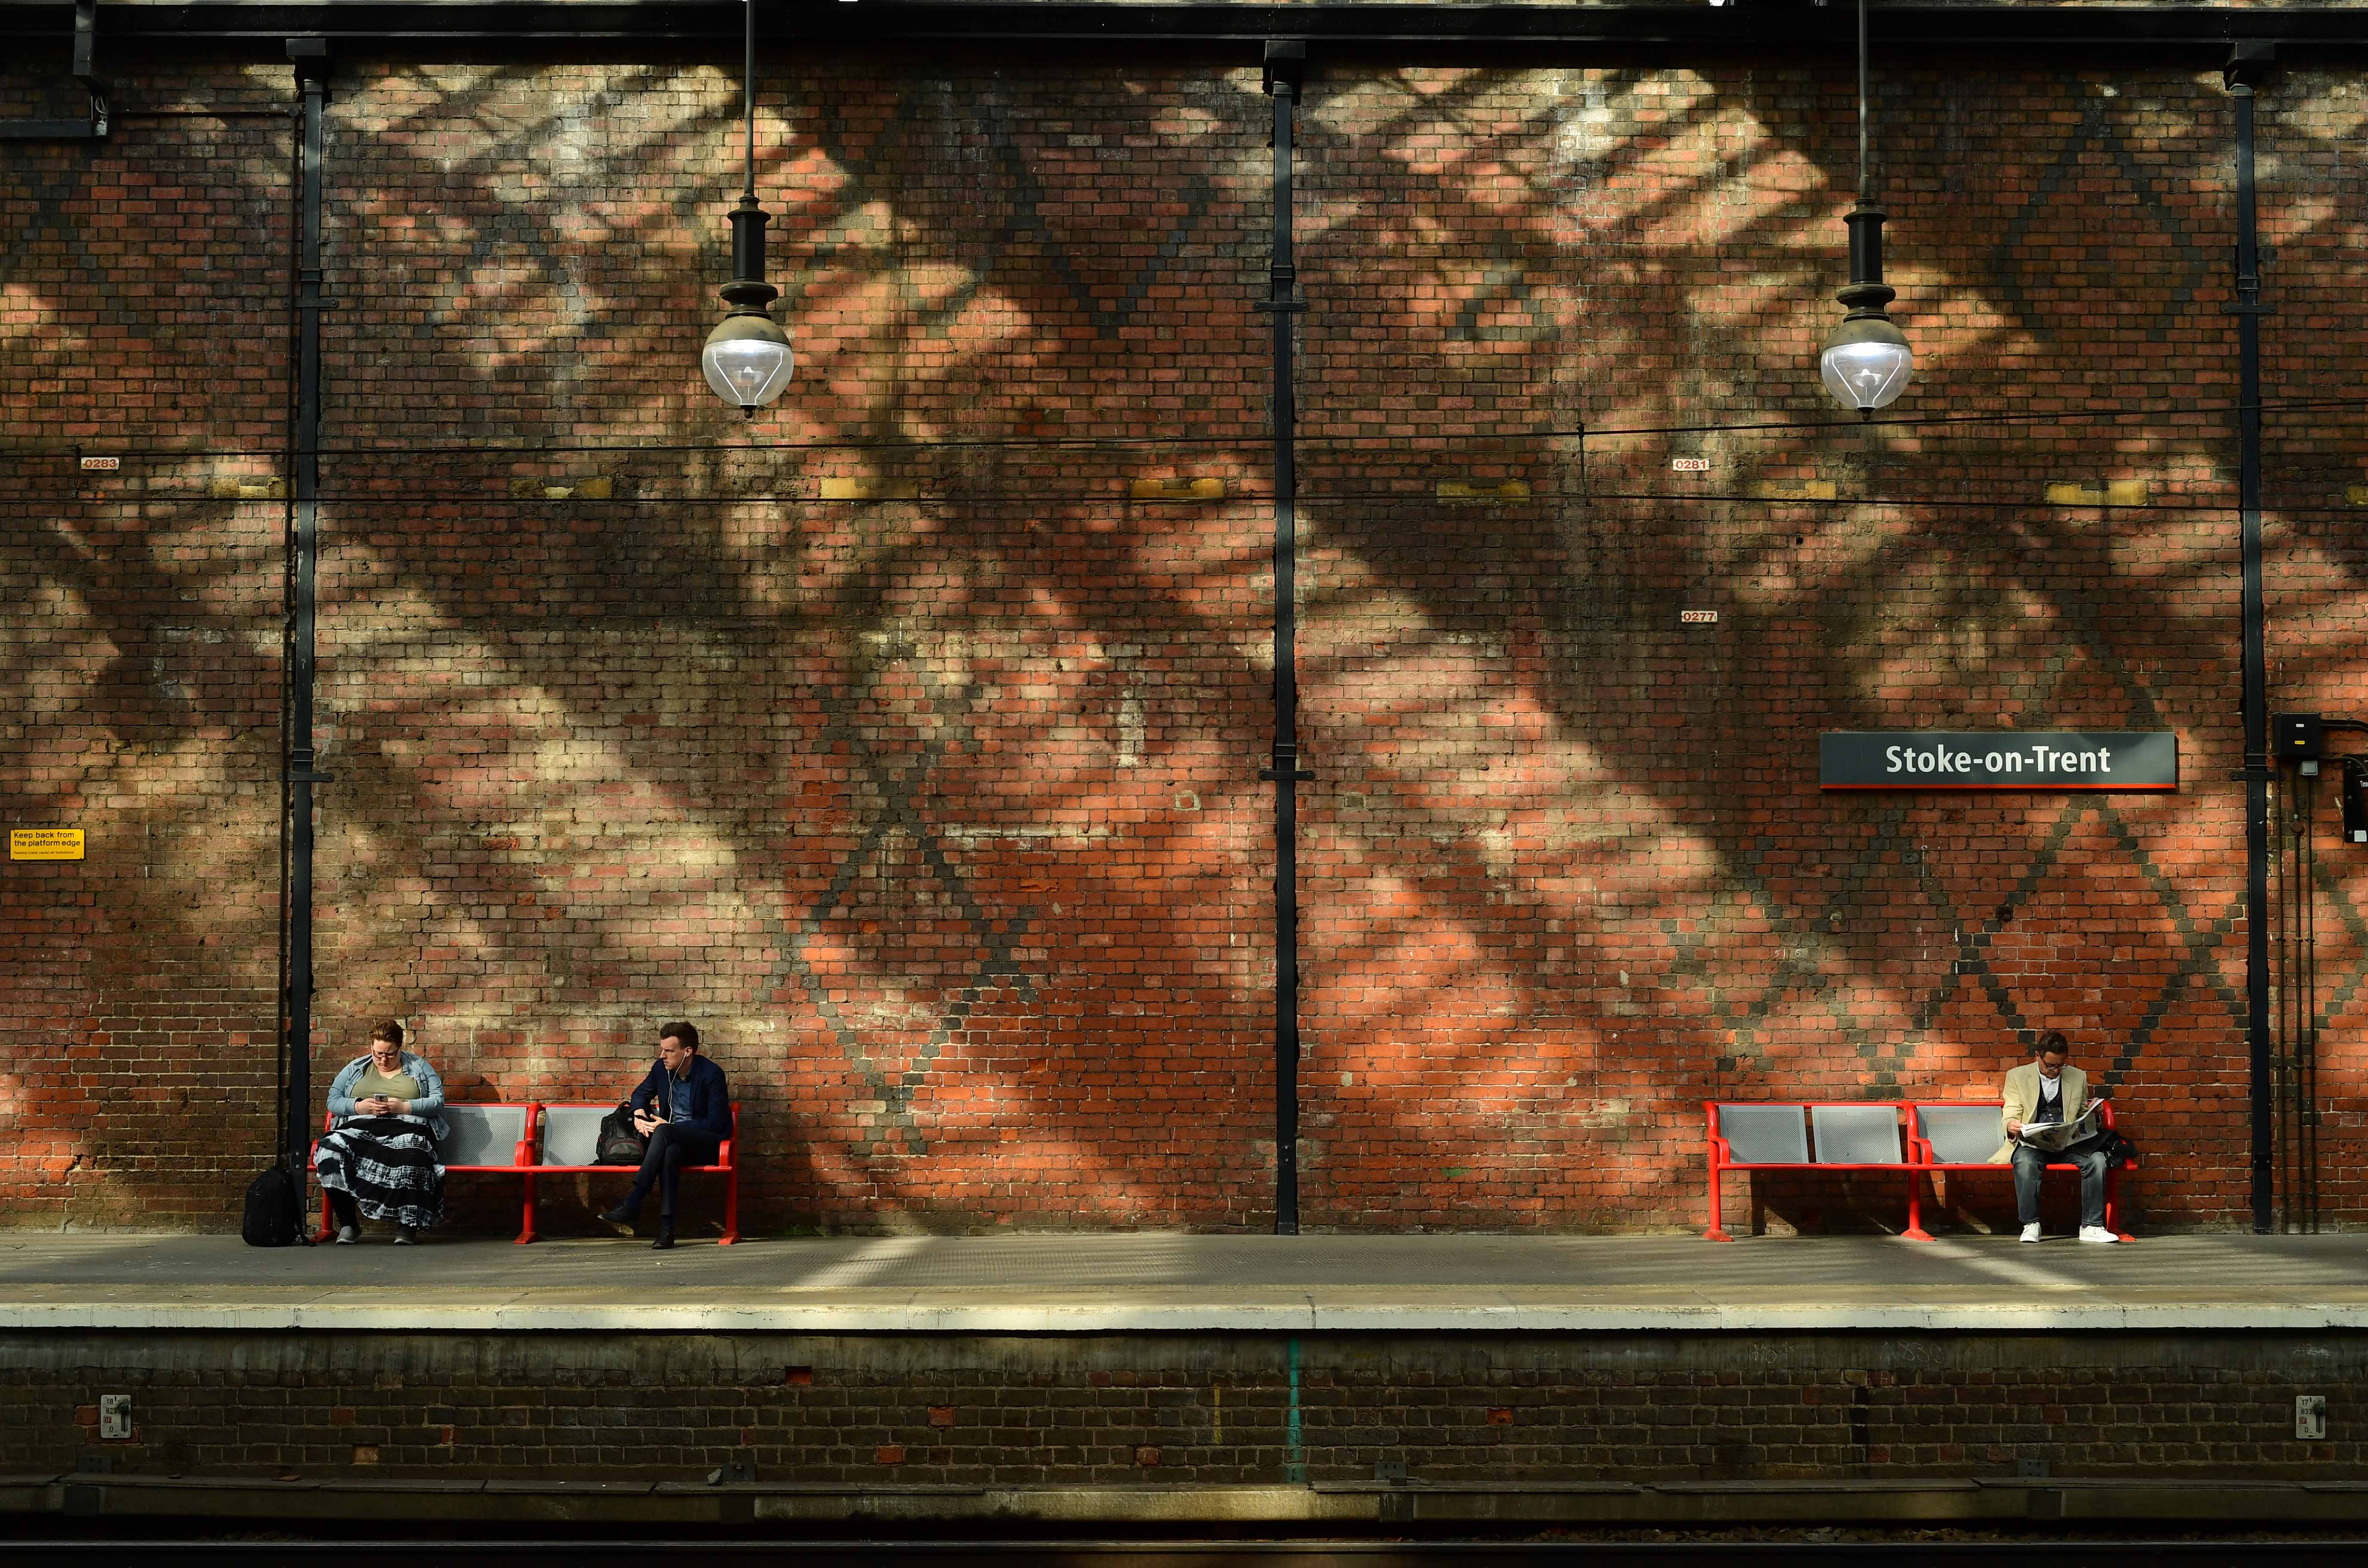 DG328841. Shadows and light. Stoke-On-Trent. 17.7.19.crop